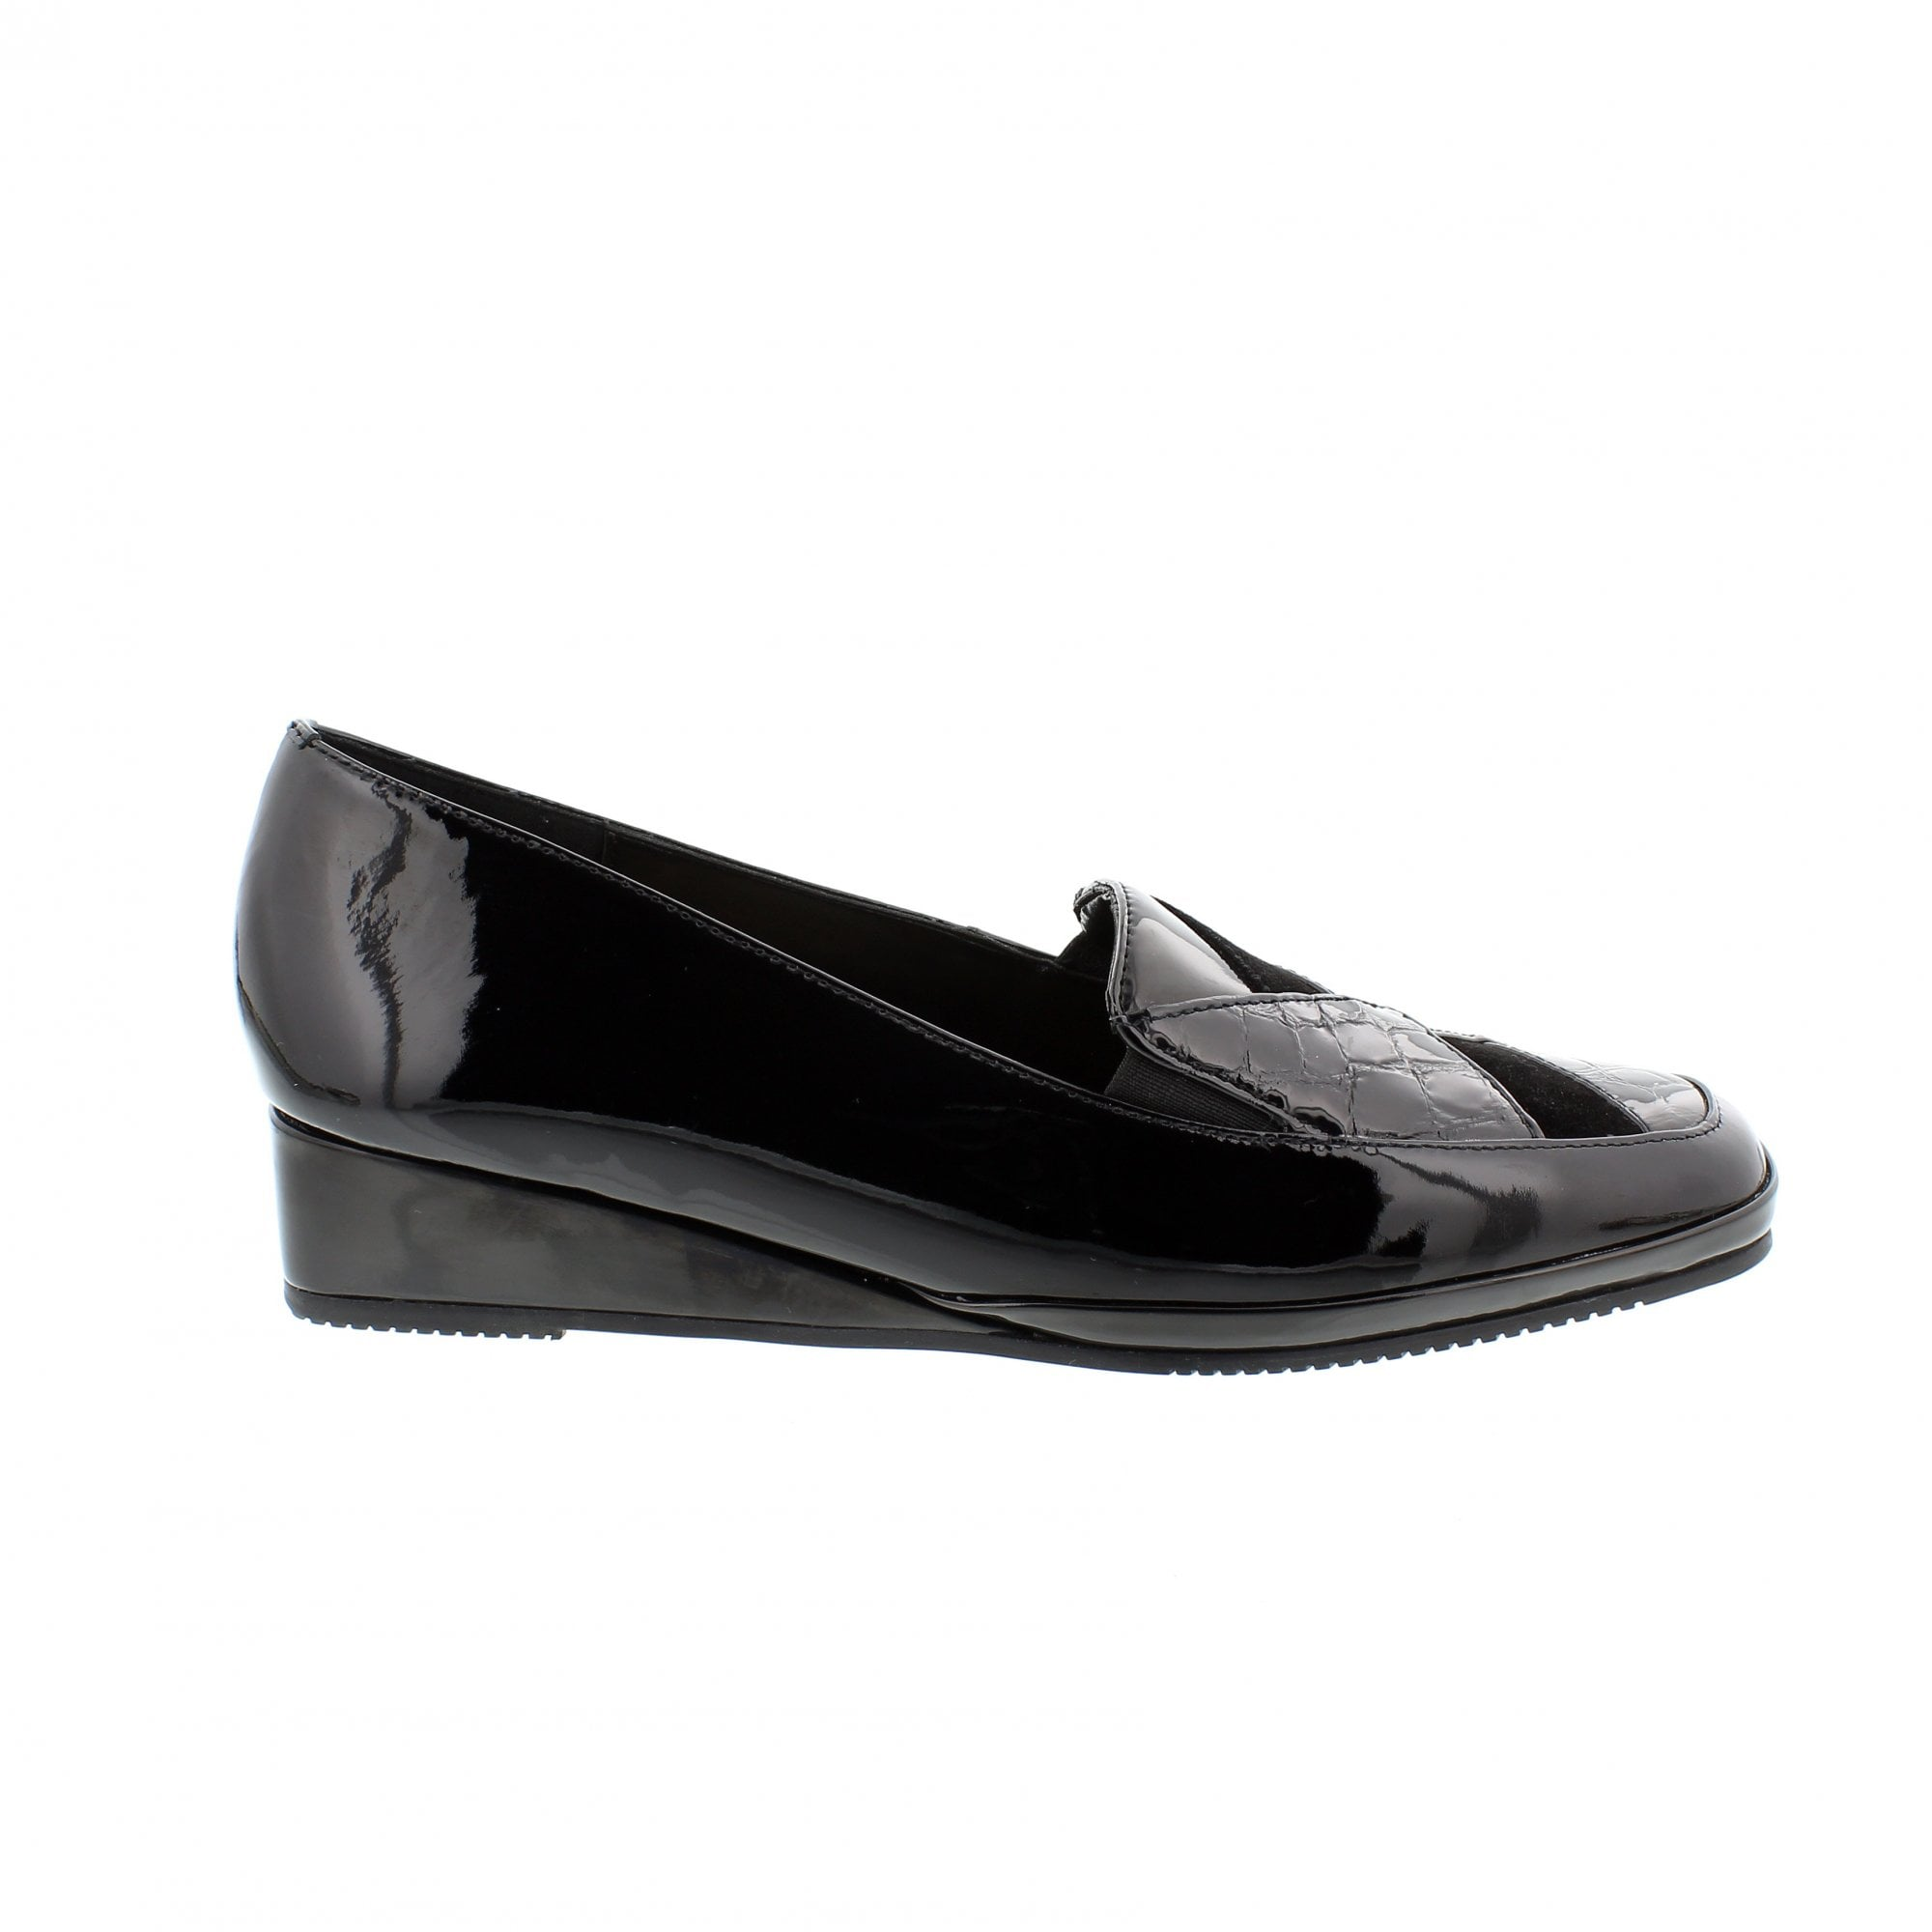 d25d5effbcded Van Dal Lyon 1517160 Black Patent Slip On Shoes | Rogerson Shoes